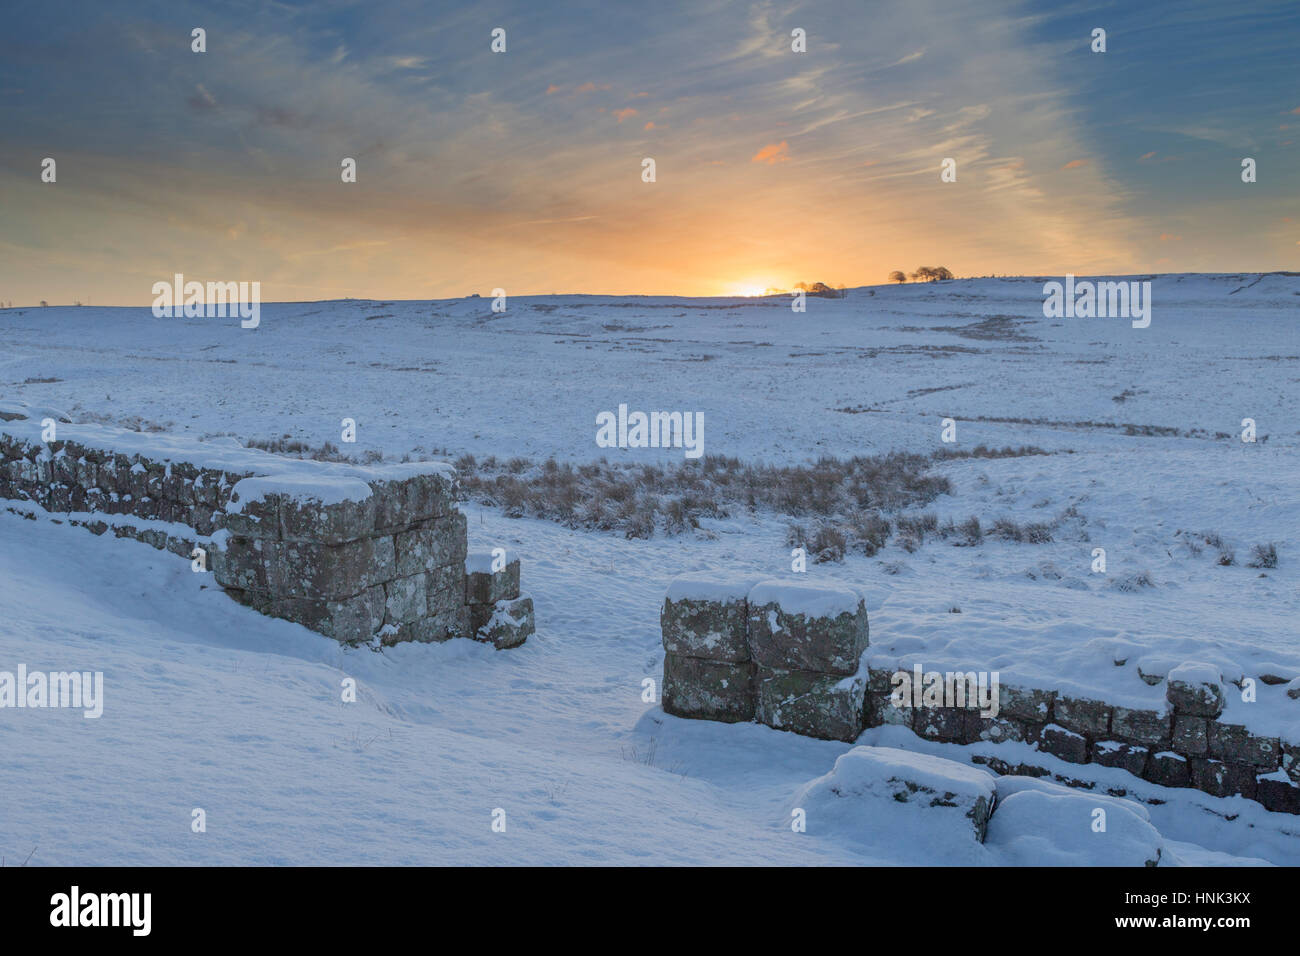 Hadrian's Wall: the south gate of Milecastle 42 at Cawfield at dawn on a cold, snowy winter's morning Stock Photo